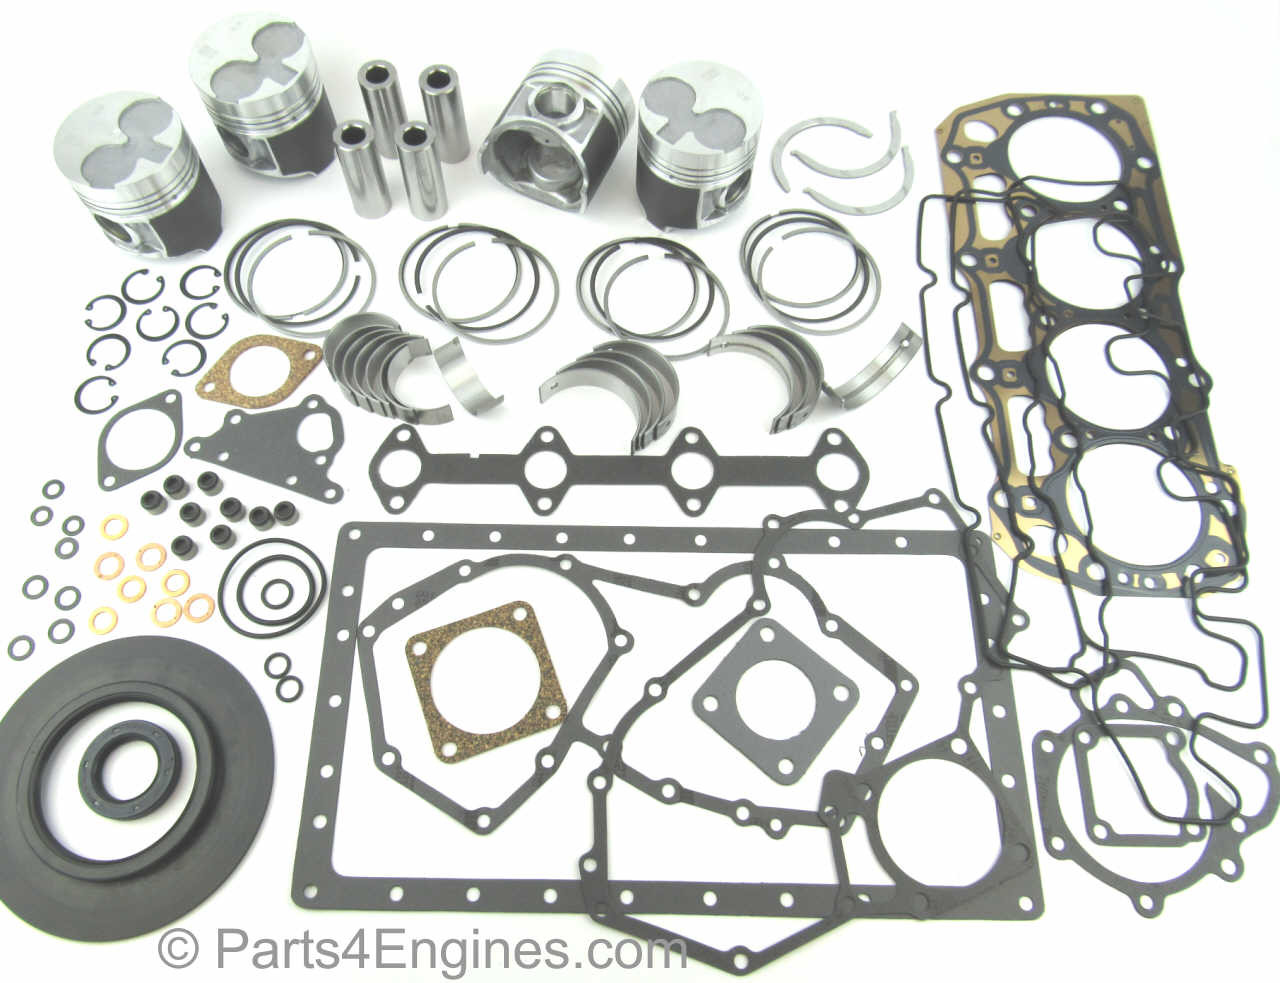 Perkins 404C-22 & 404C-22T Engine overhaul kit from parts4engines.com